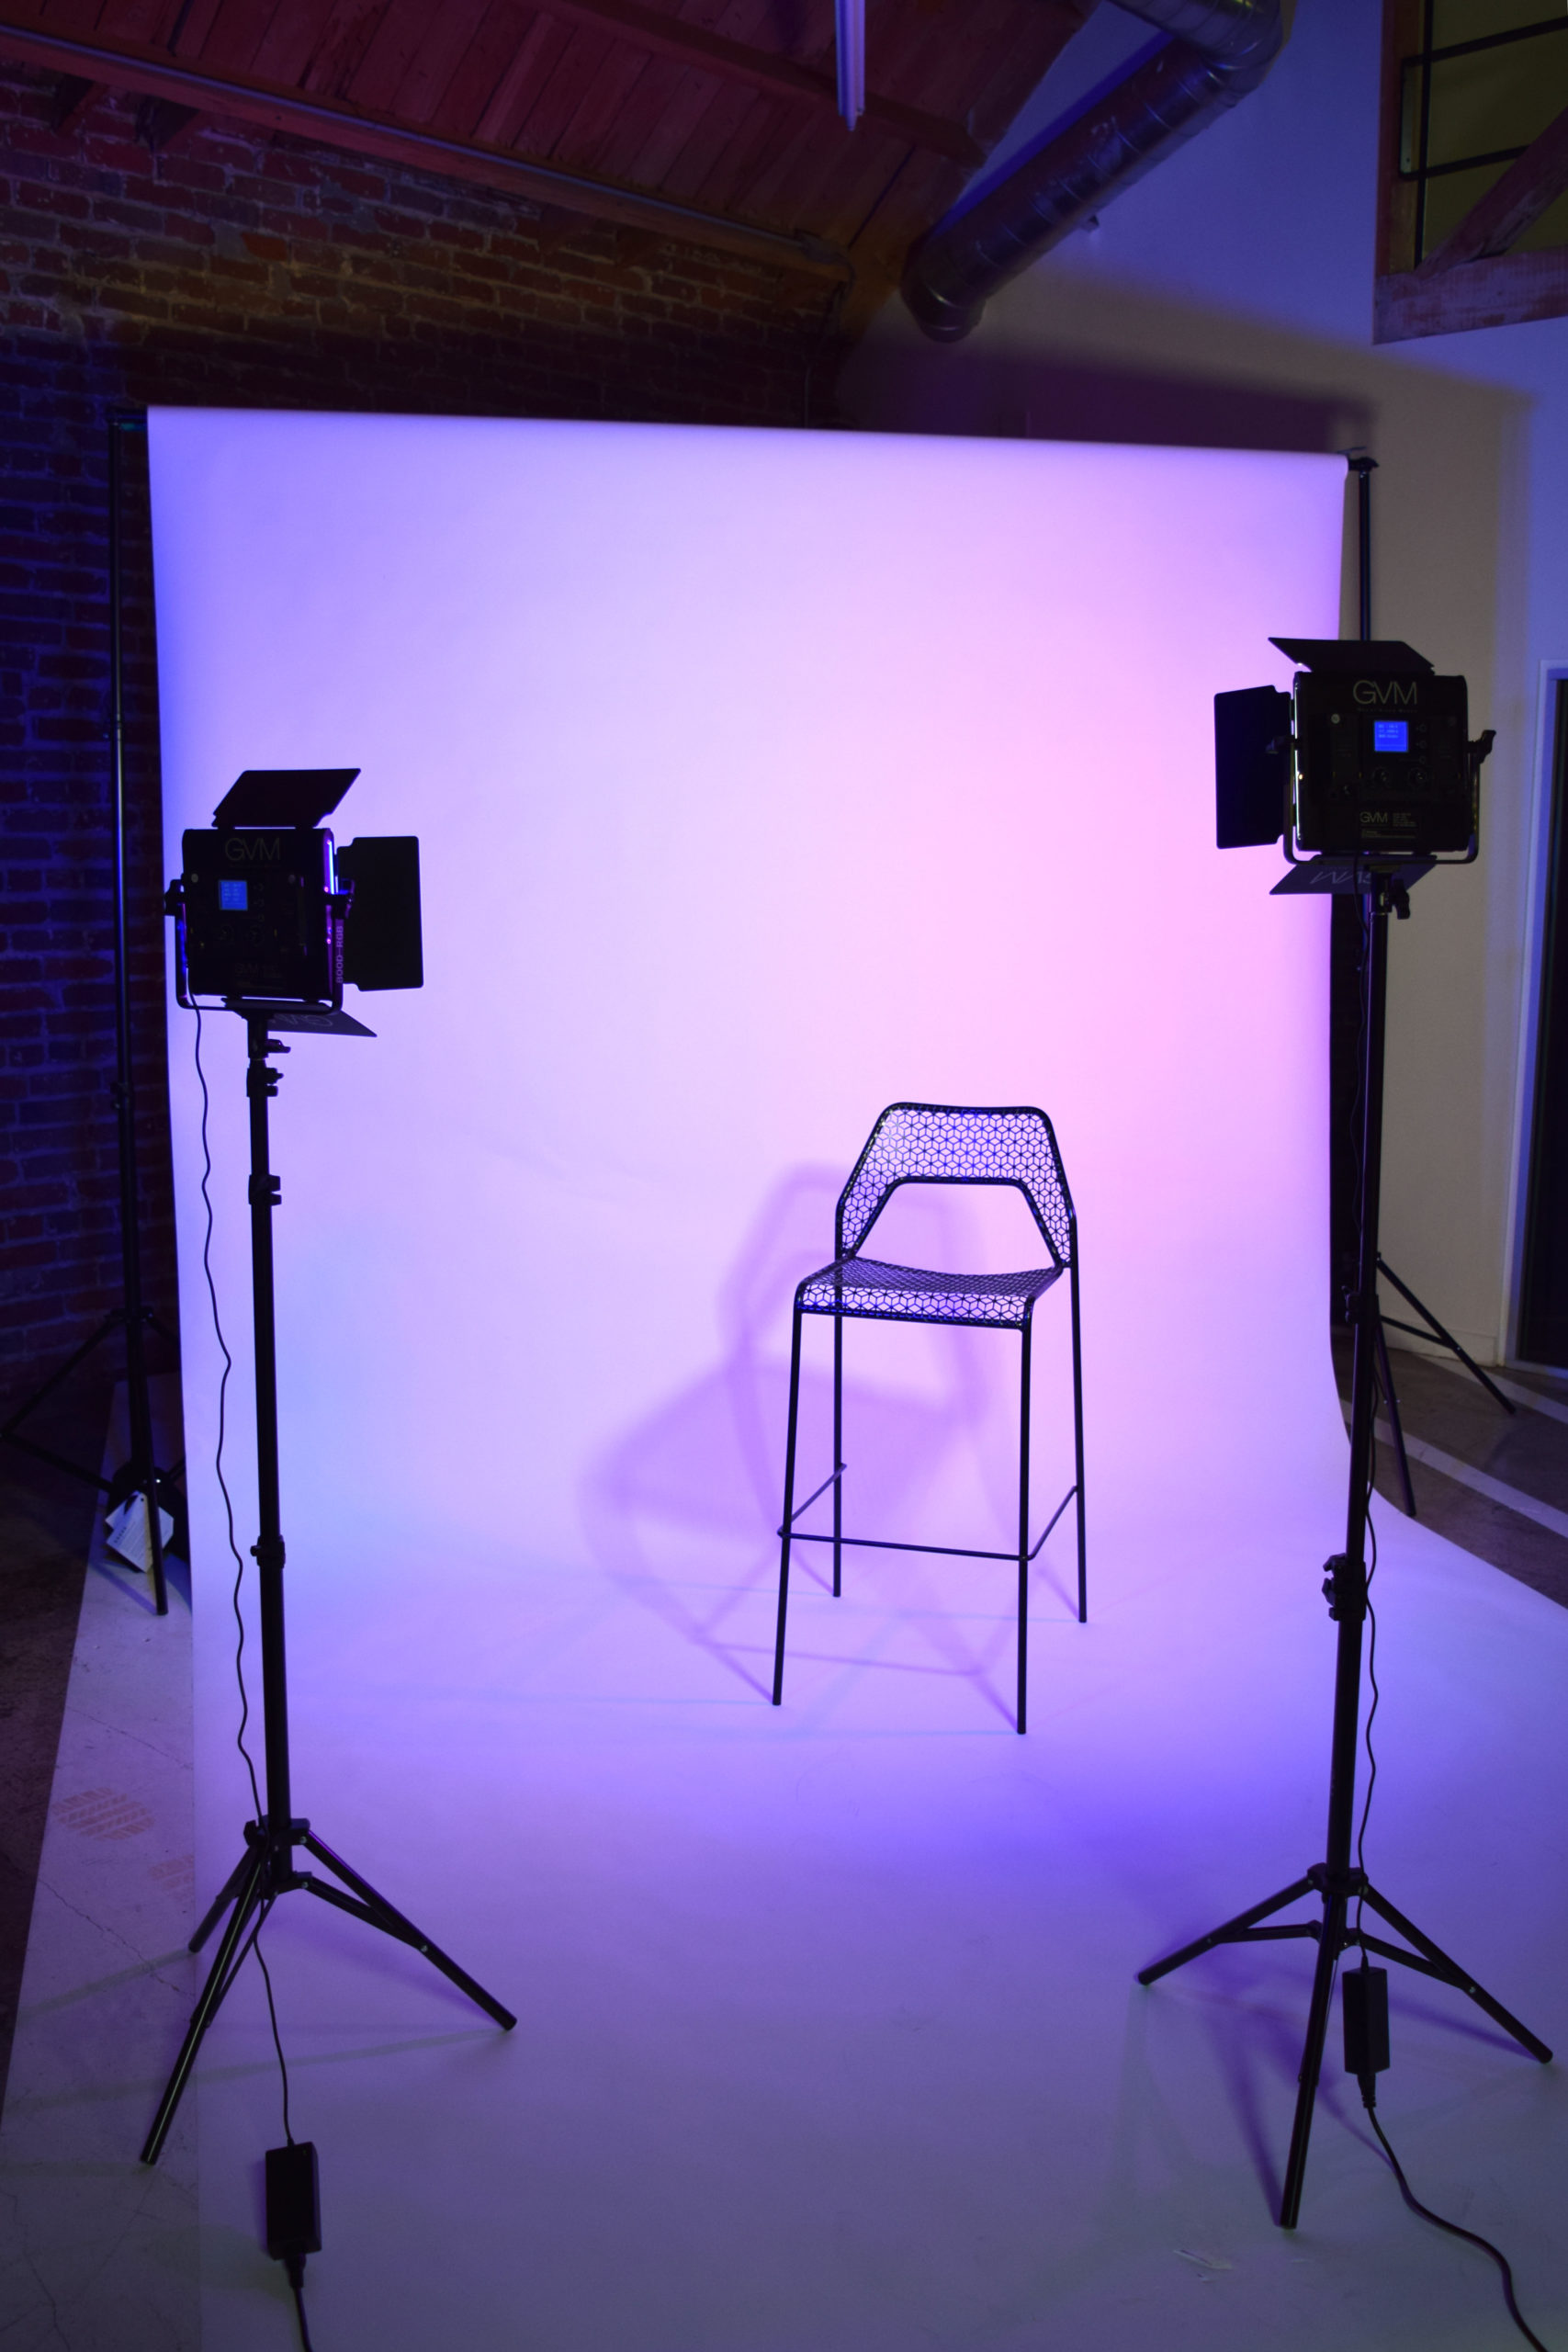 MGS Photoshoots White Seamless Backdrop Setup with Lights and Chair